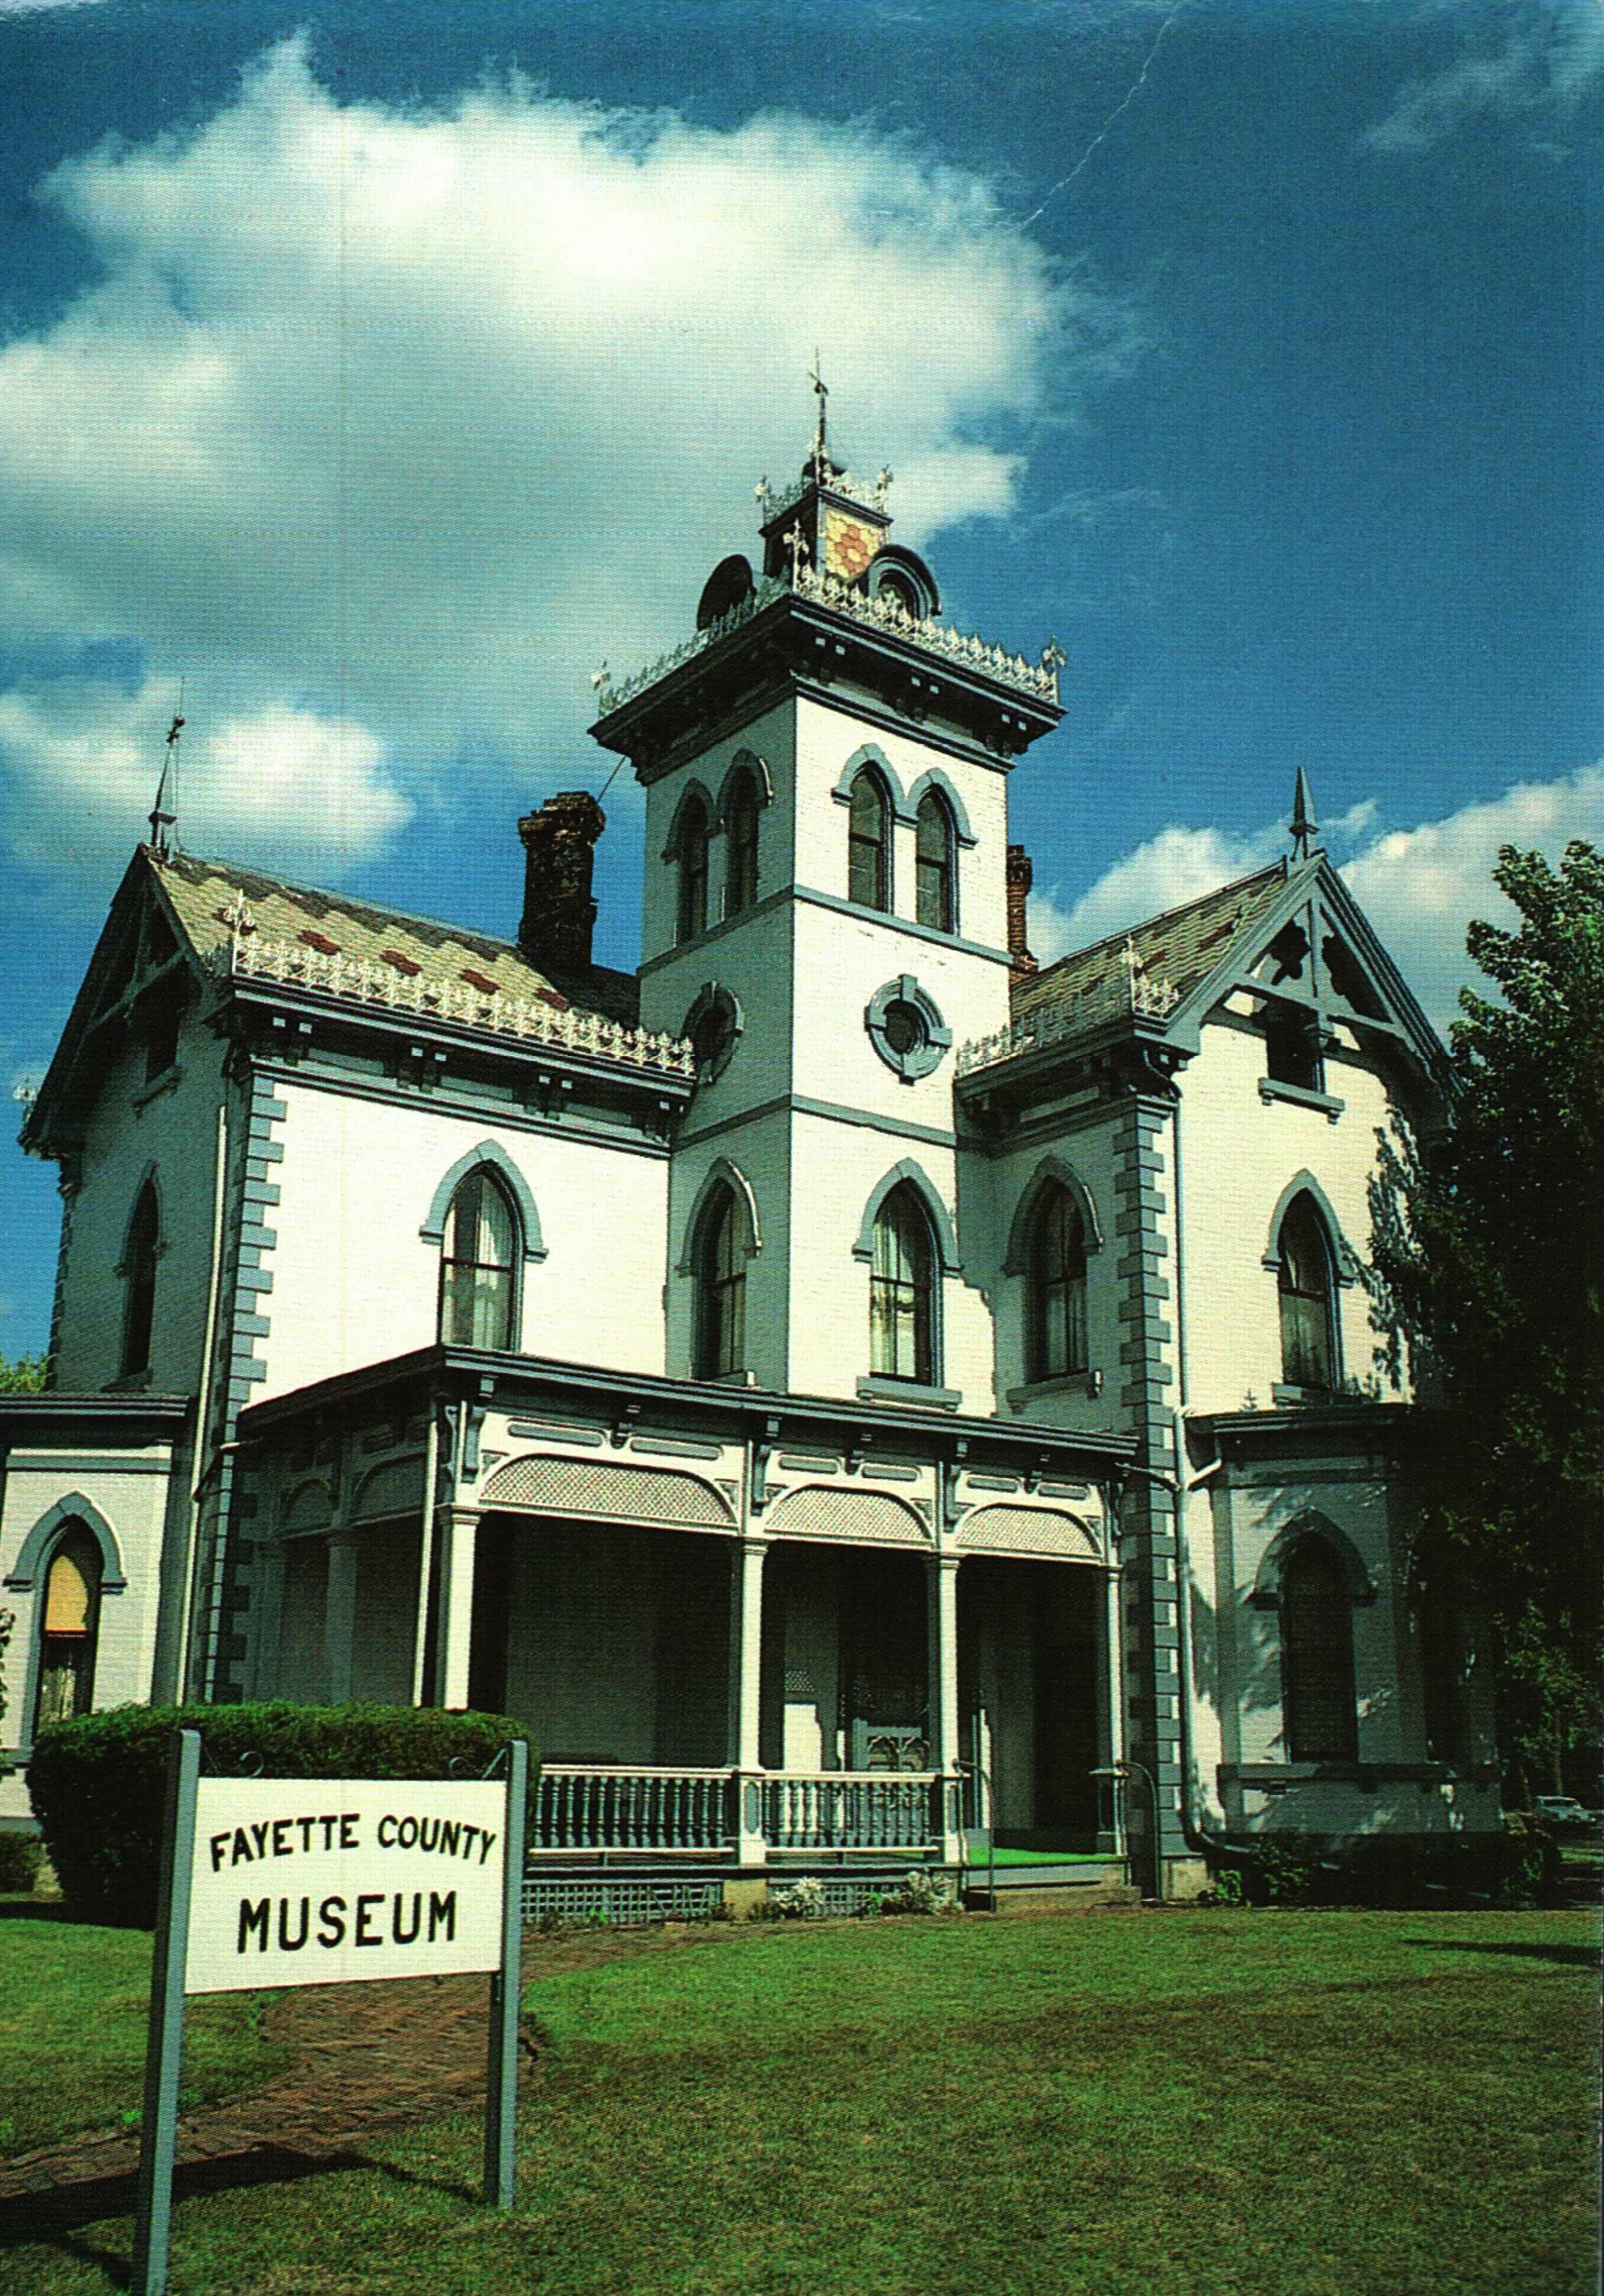 The Fayette County Historical Society Museum opened in 1965 in the historic Morris Sharp House, built in 1875. Image courtesy of the Fayette County Historical Society.